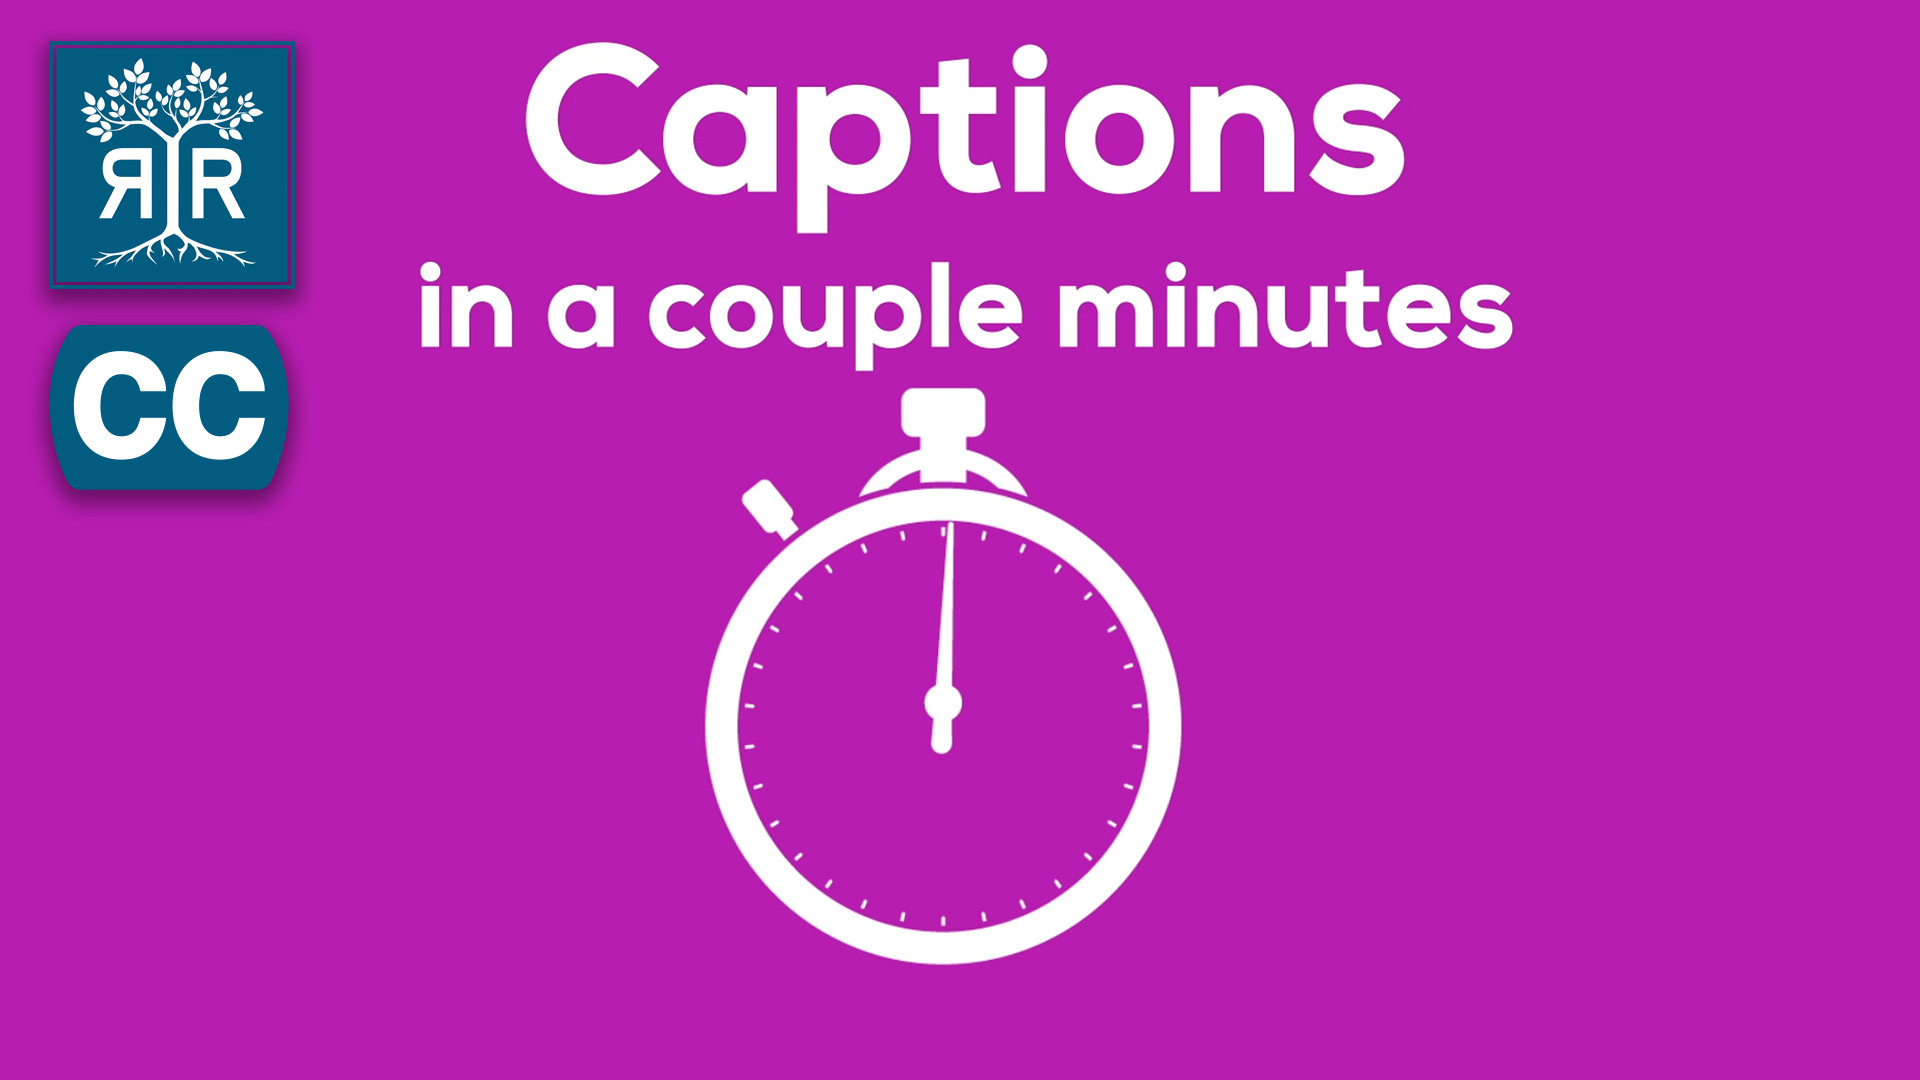 Image of an illustrated clock with the following text against a purple background: Captions in a couple minutes